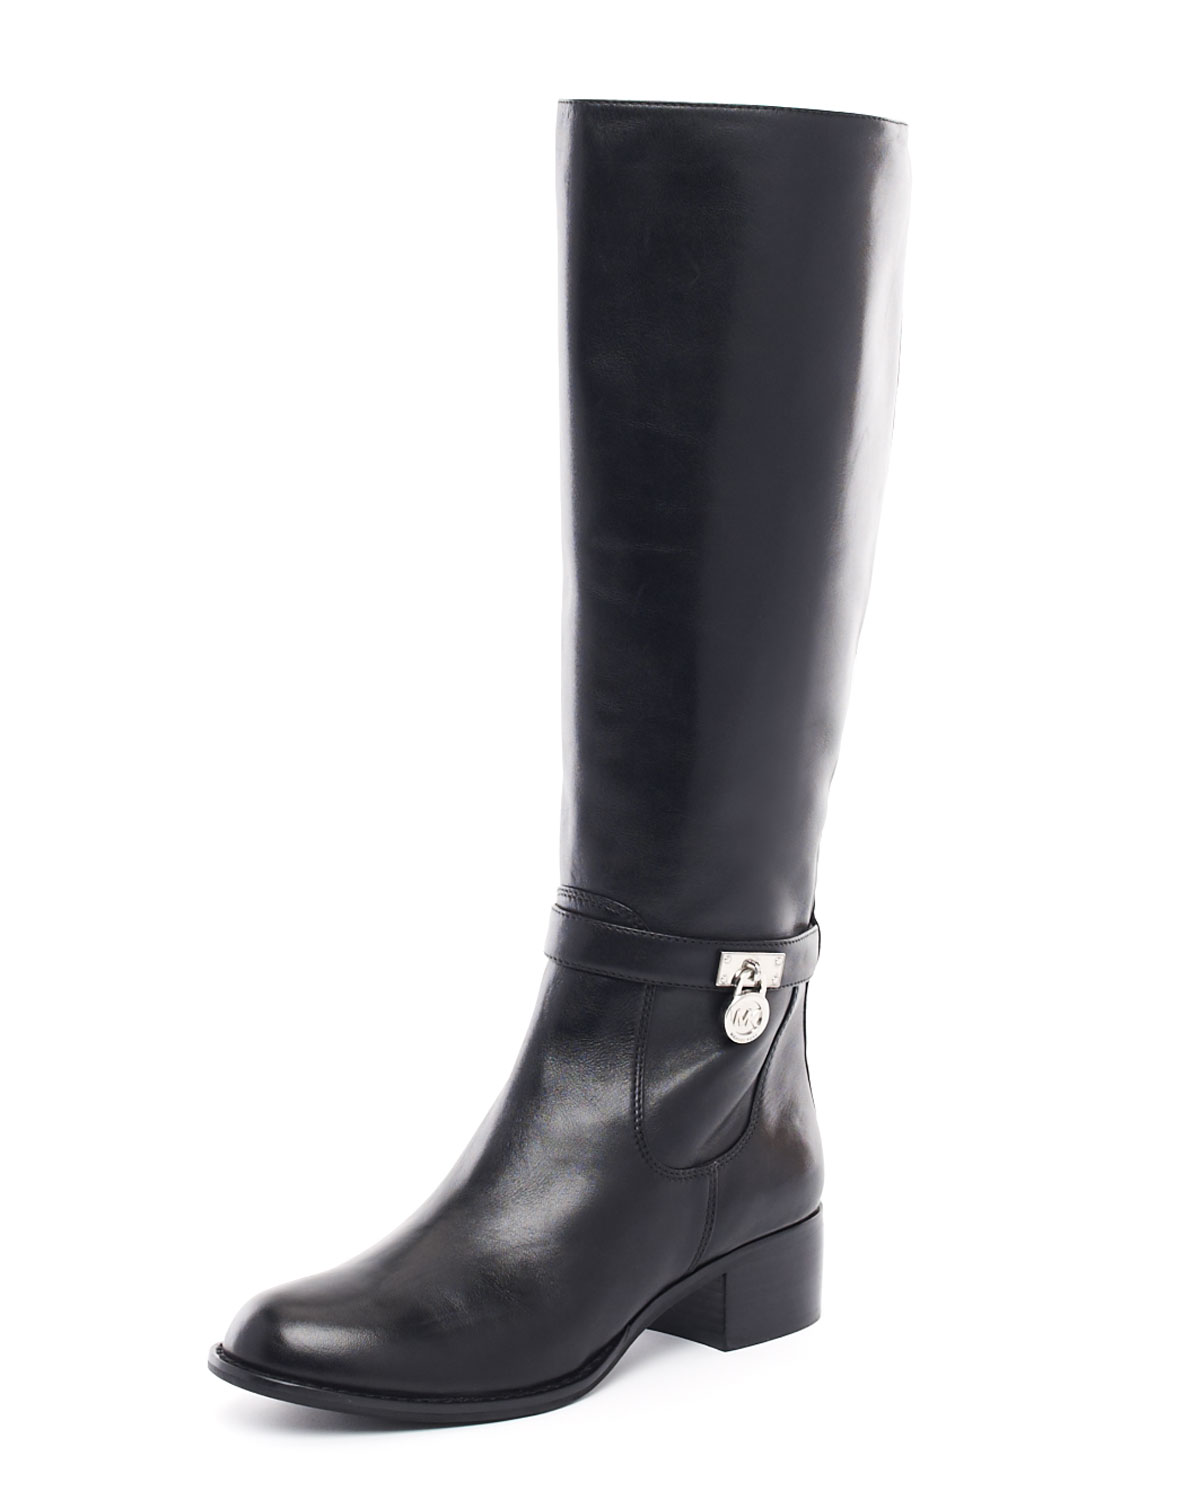 lyst michael kors hamilton riding boots in brown